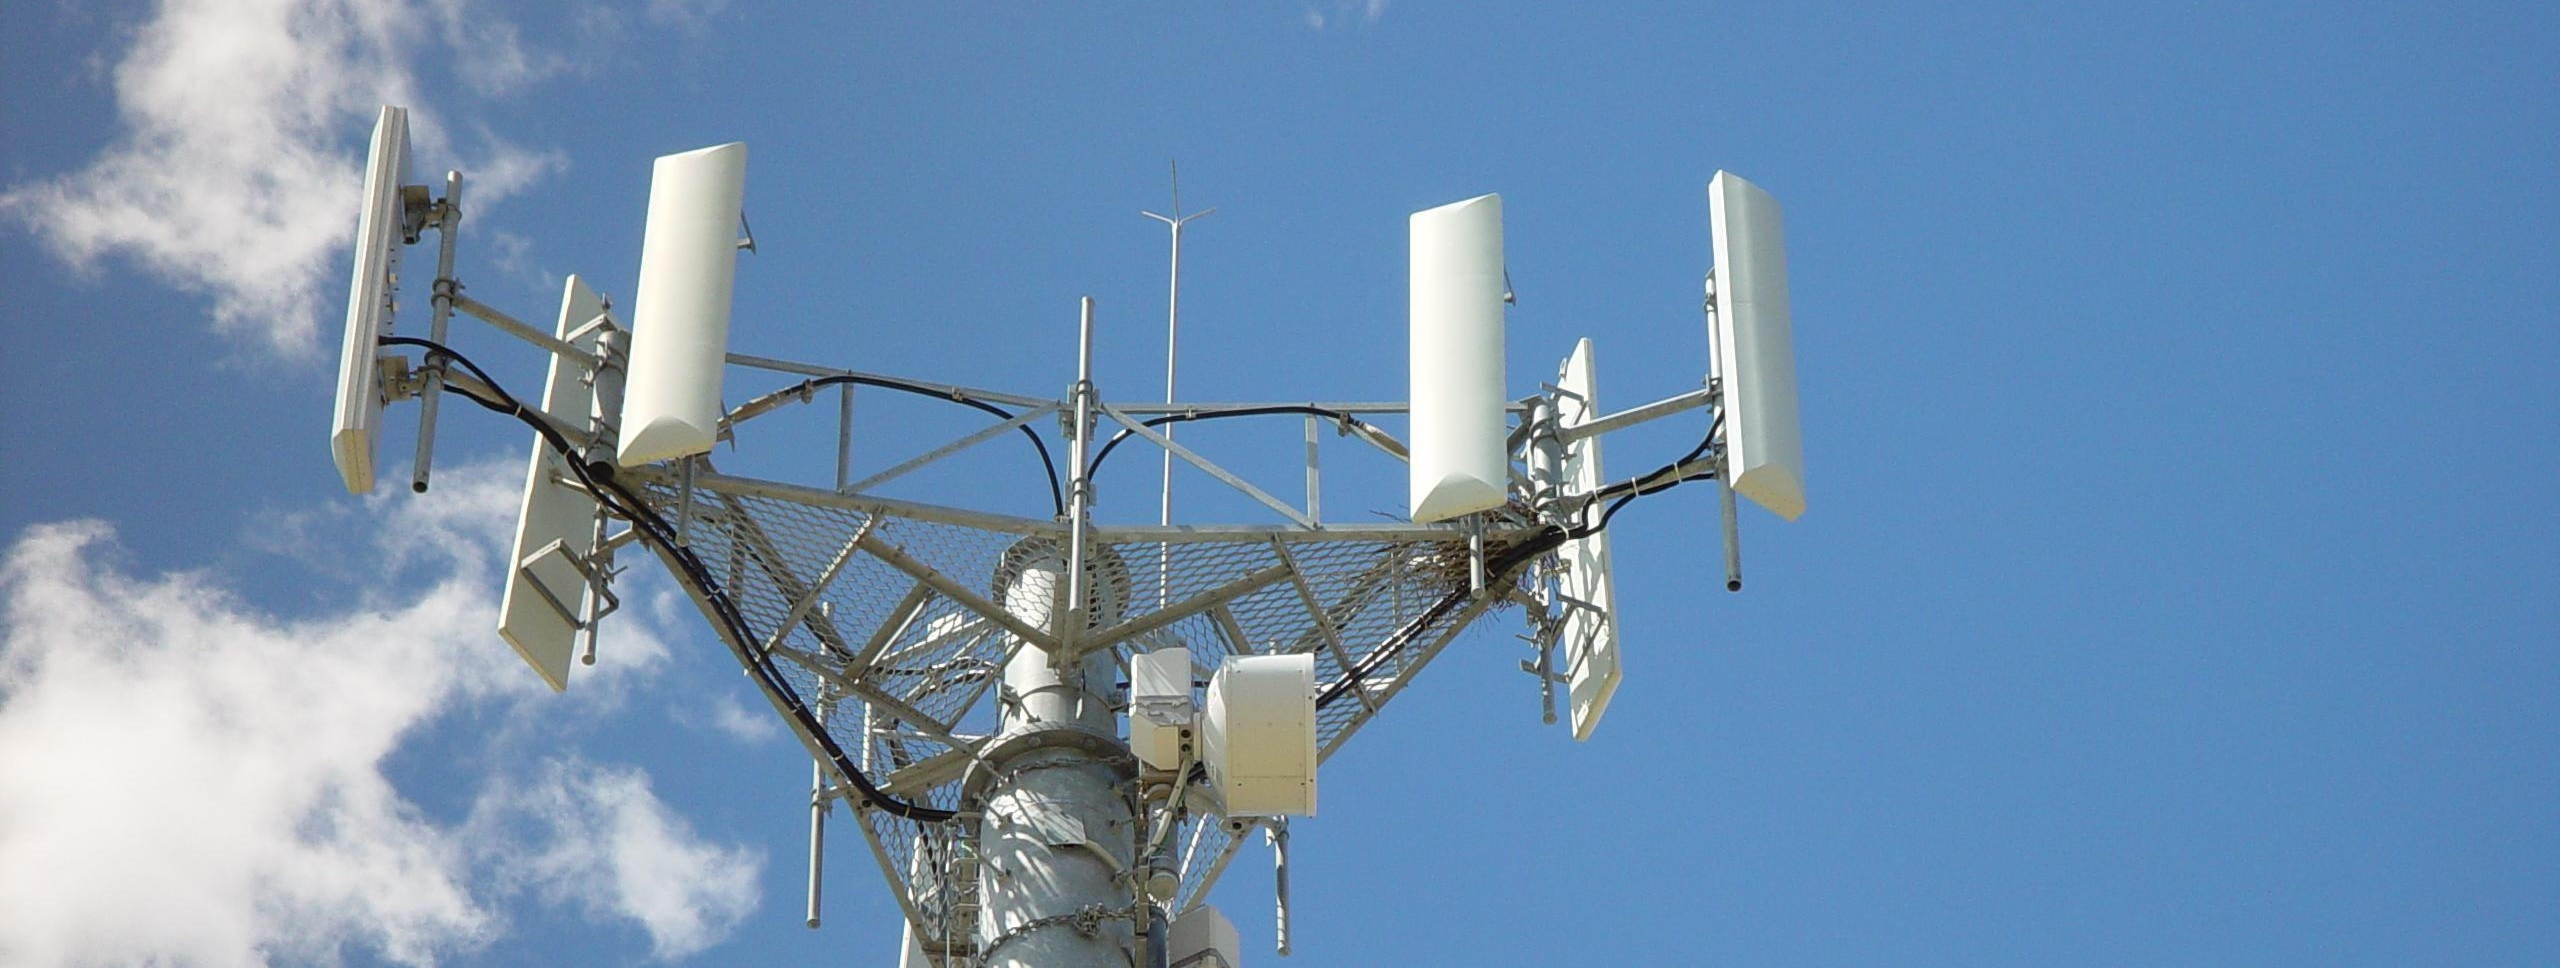 mobile-telephone-antennas-tower